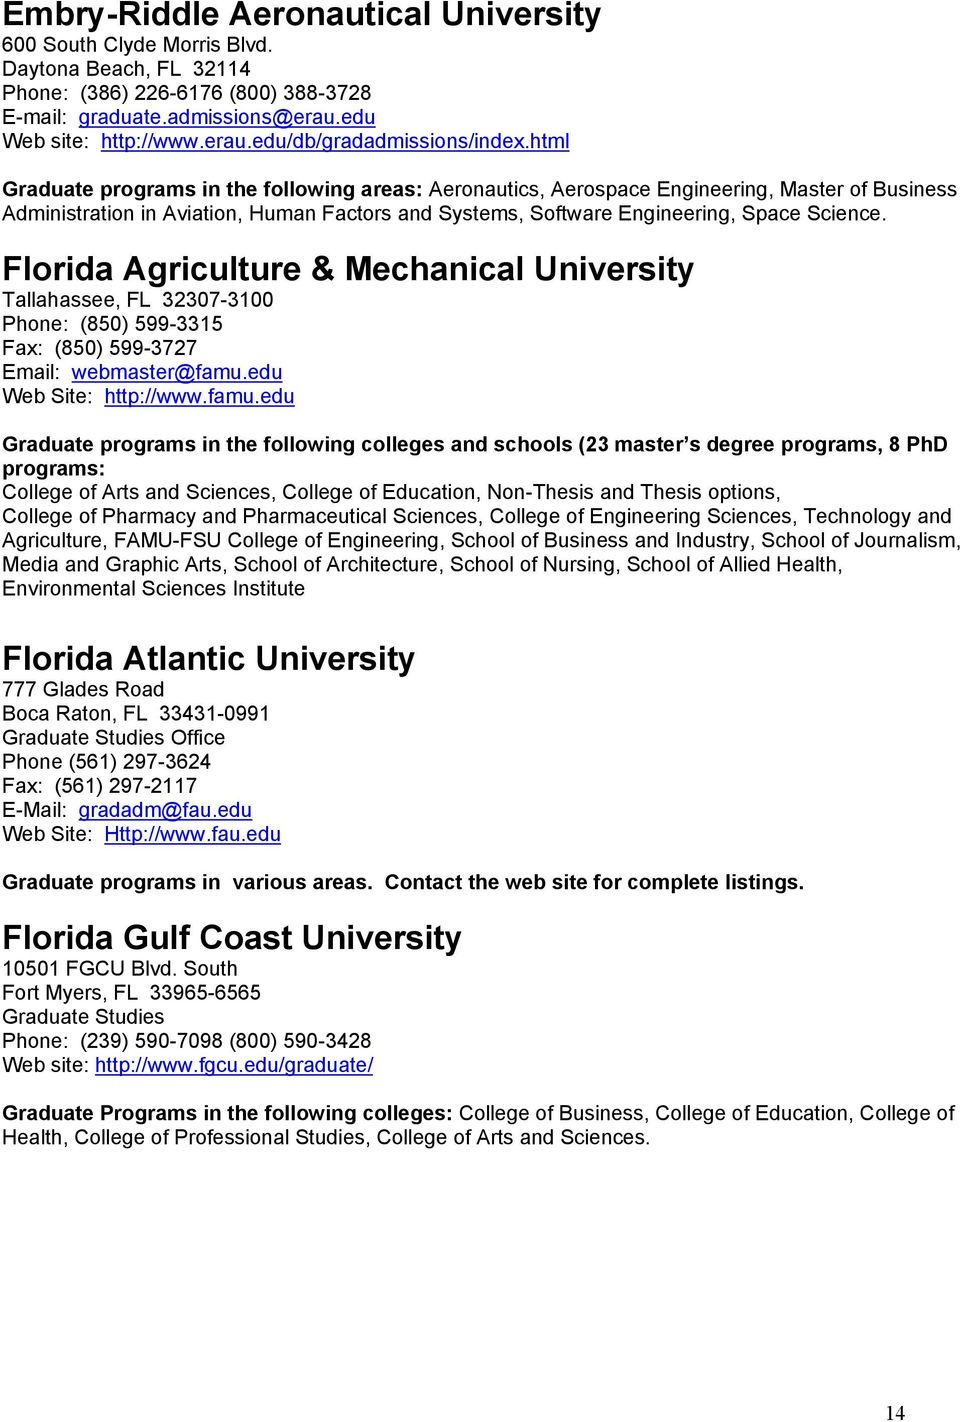 Florida Agriculture & Mechanical University Tallahassee, FL 32307-3100 Phone: (850) 599-3315 Fax: (850) 599-3727 Email: webmaster@famu.